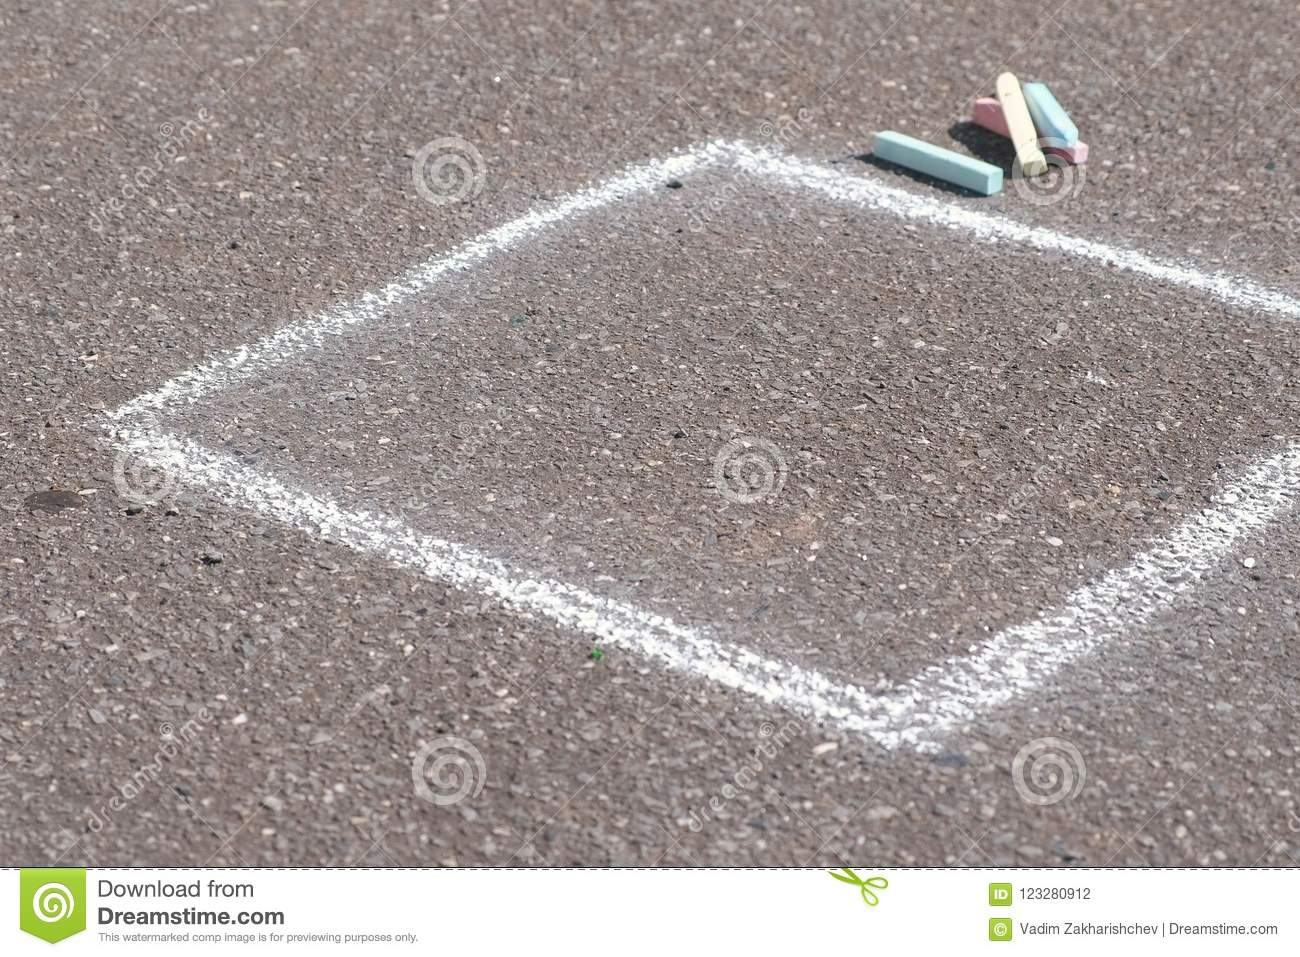 Drawing square with chalk on asphalt outdoor.